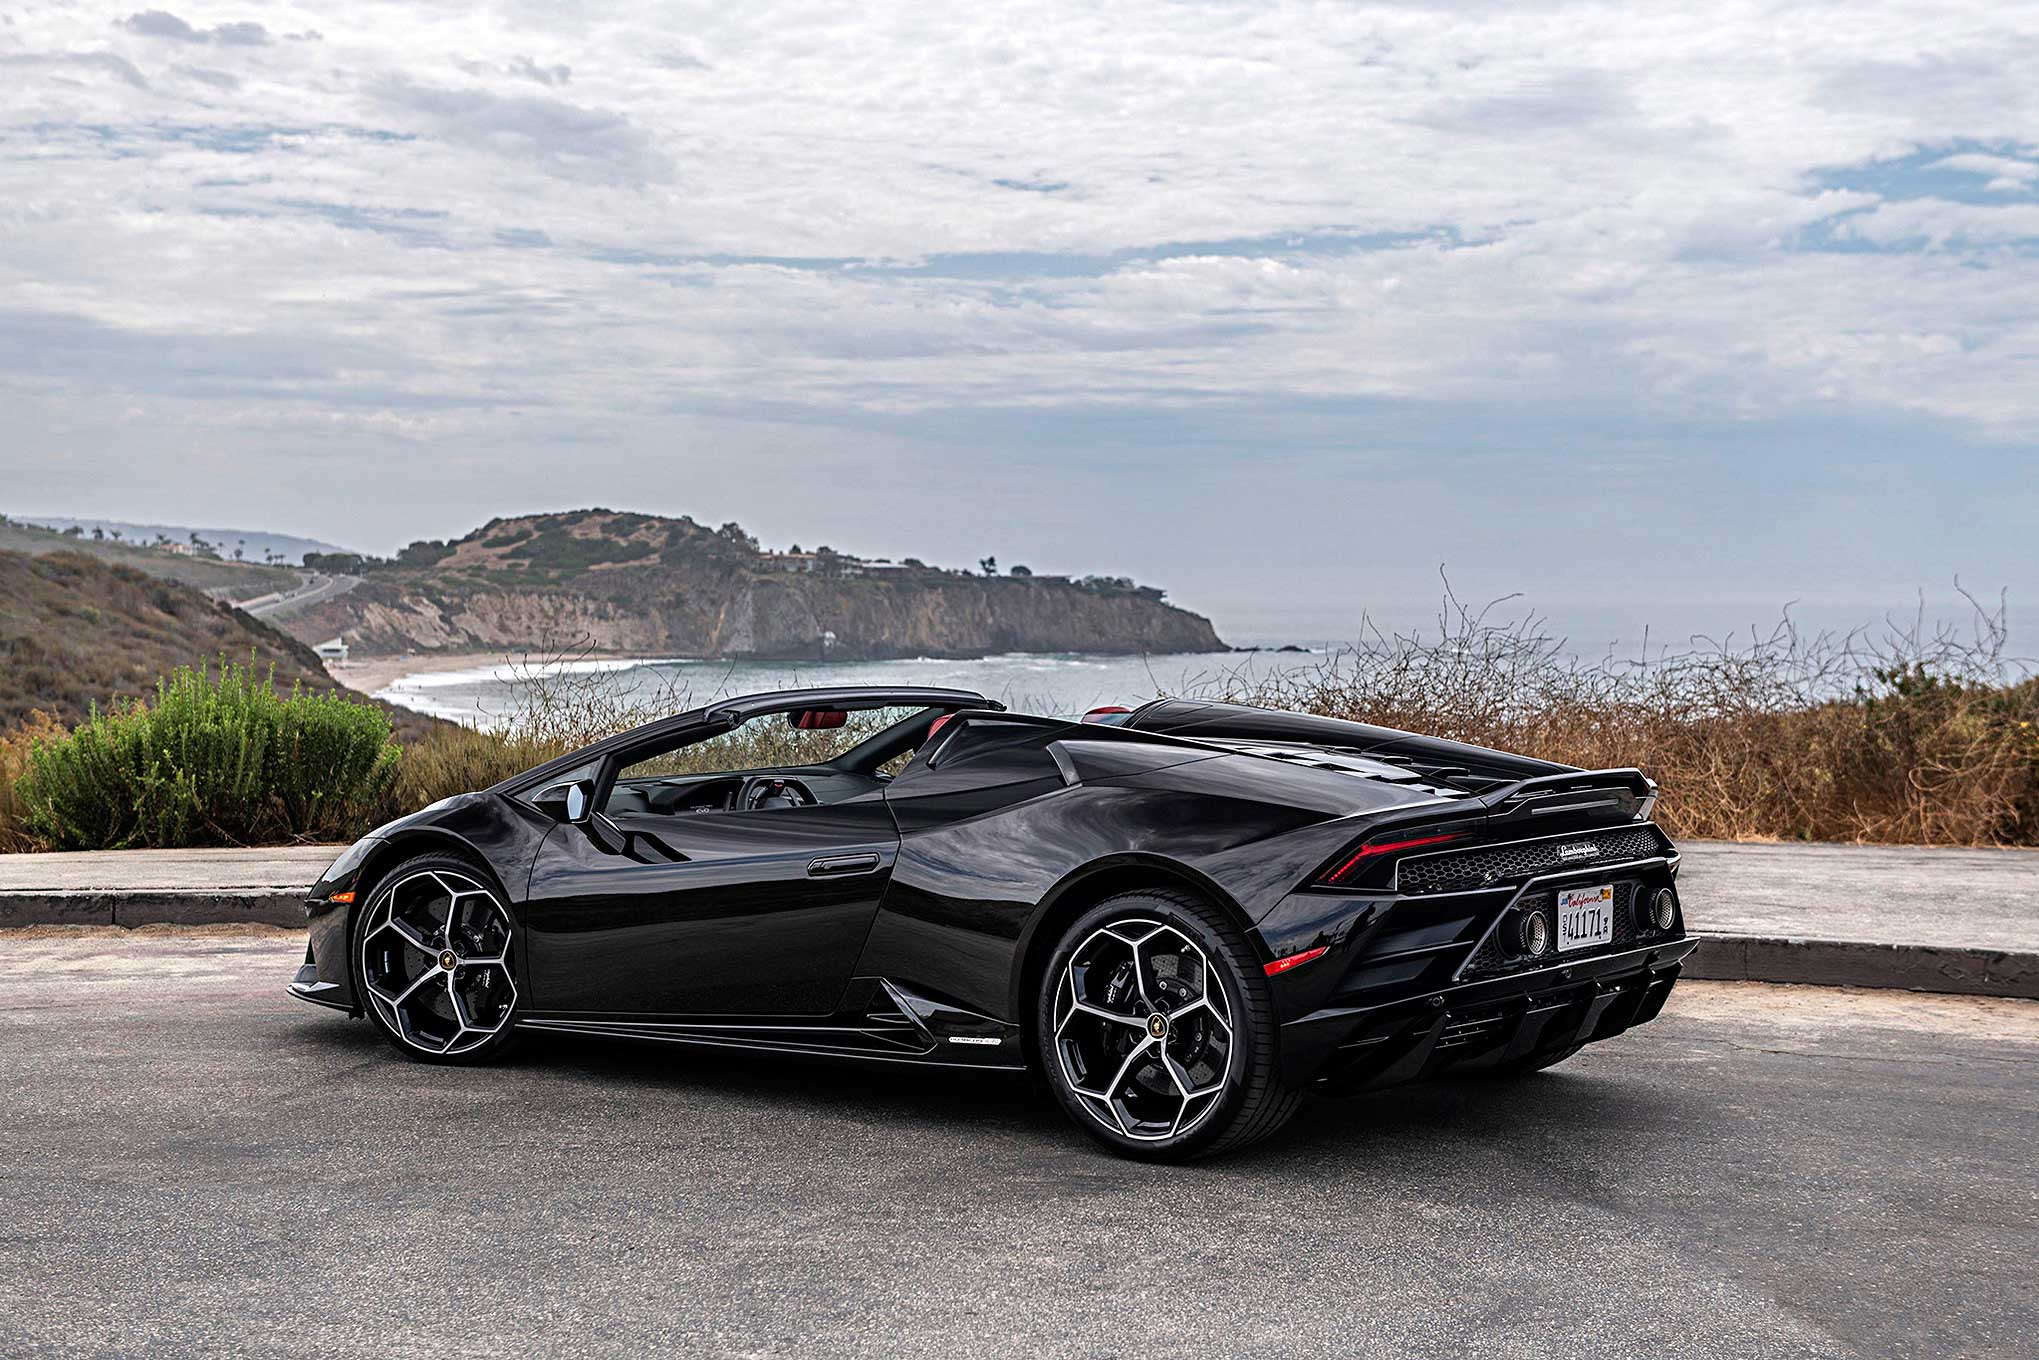 On The Road 2020 Lamborghini Huracan Evo Spyder